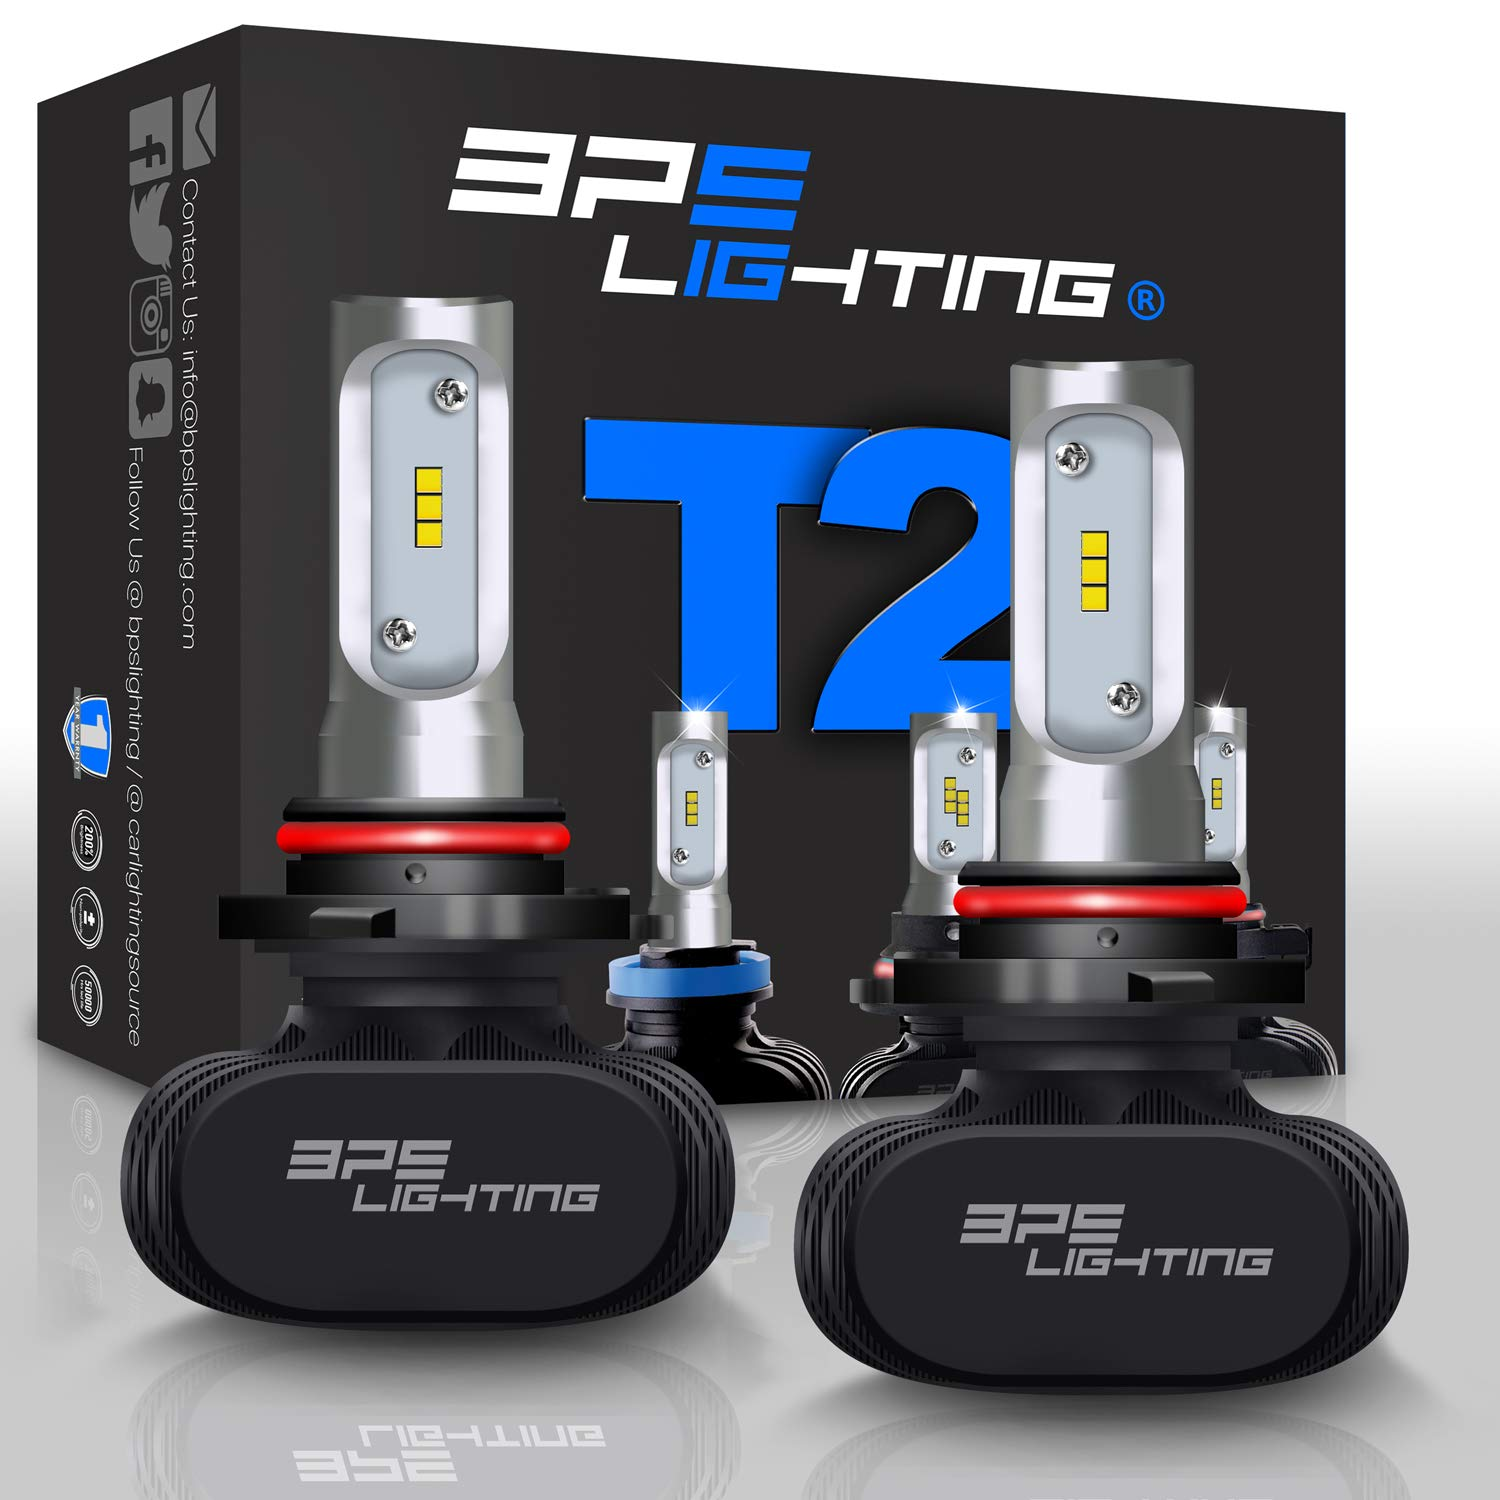 BPS Lighting T2 LED Headlight Bulbs Conversion Kit Car and Truck Super Bright Plug and Play High and Low Beam All-in One Cool White H4 9003 HB2-50W 8000 Lumen 6000K 6500K